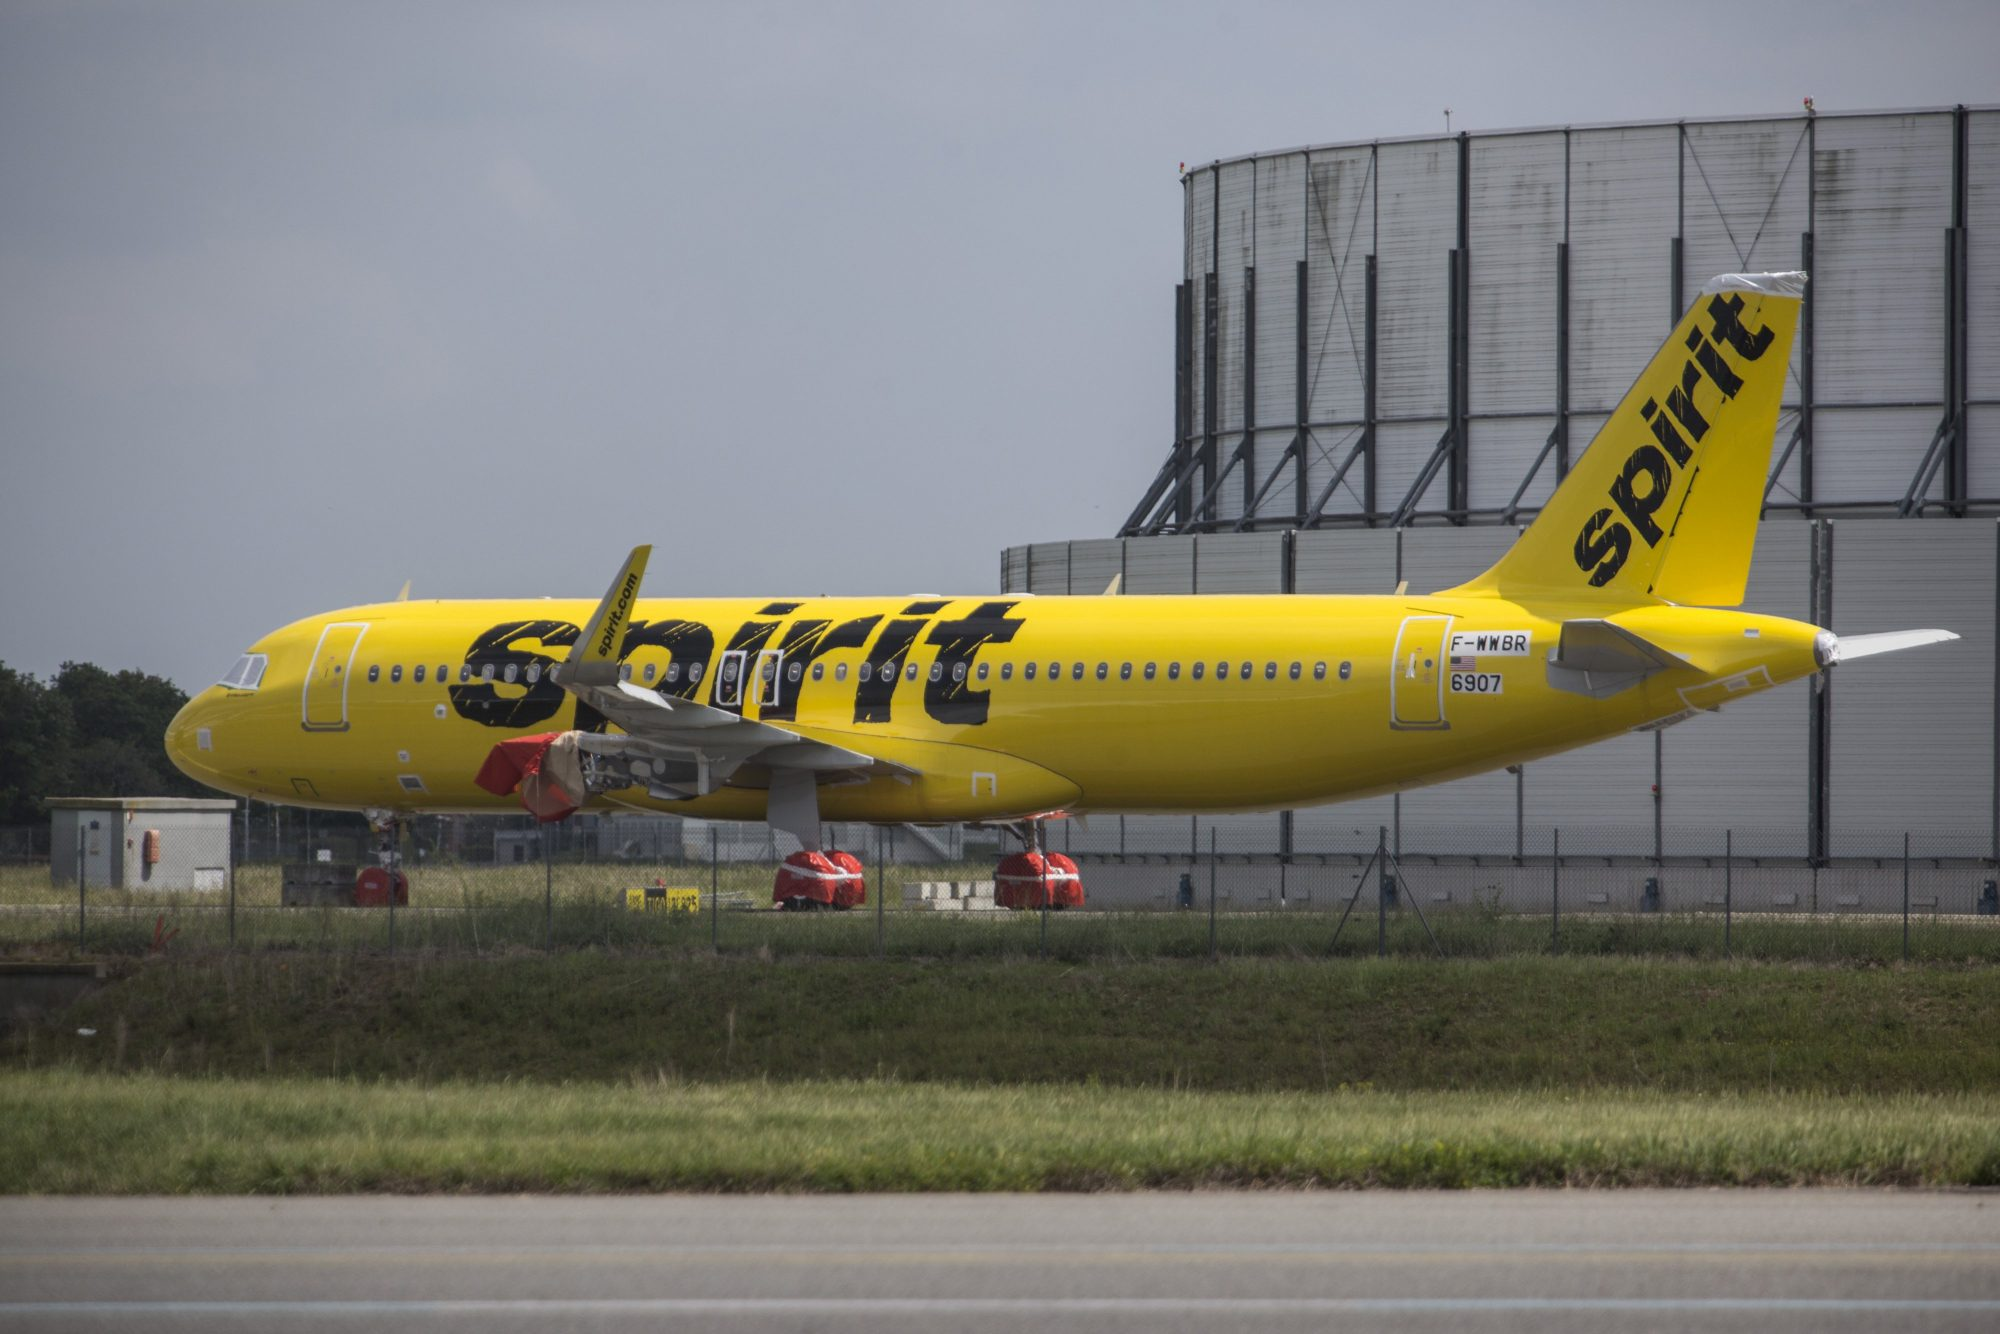 Spirit Airlines is trying to improve its on-time performance.